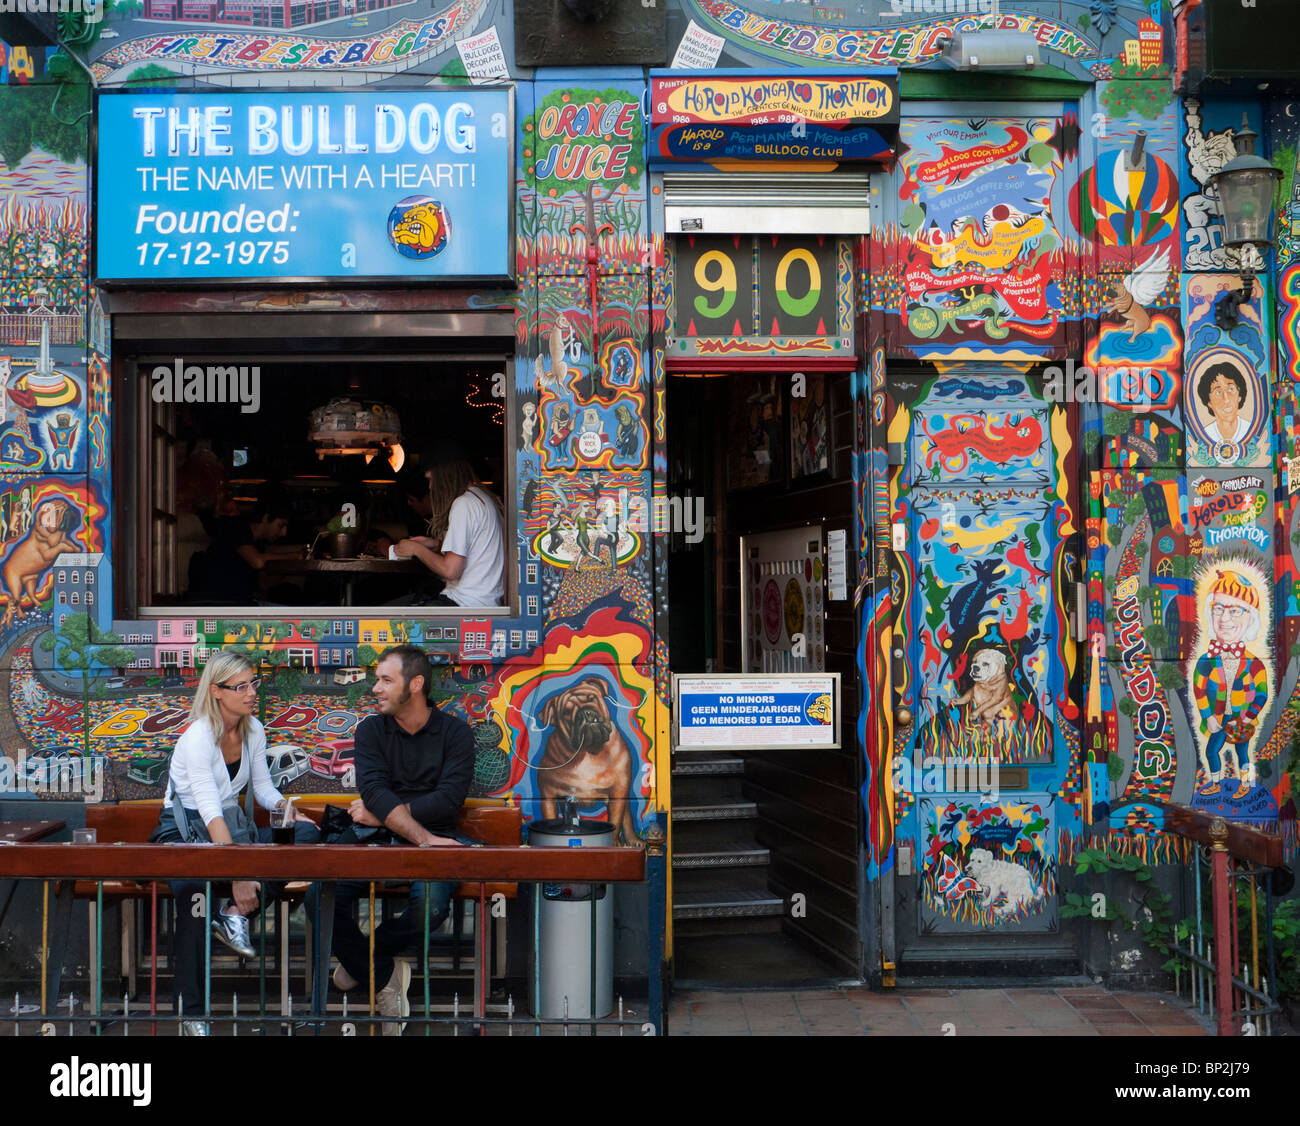 Exterior of famous Bulldog coffeeshop in red light district of Amsterdam in The Netherlands - Stock Image